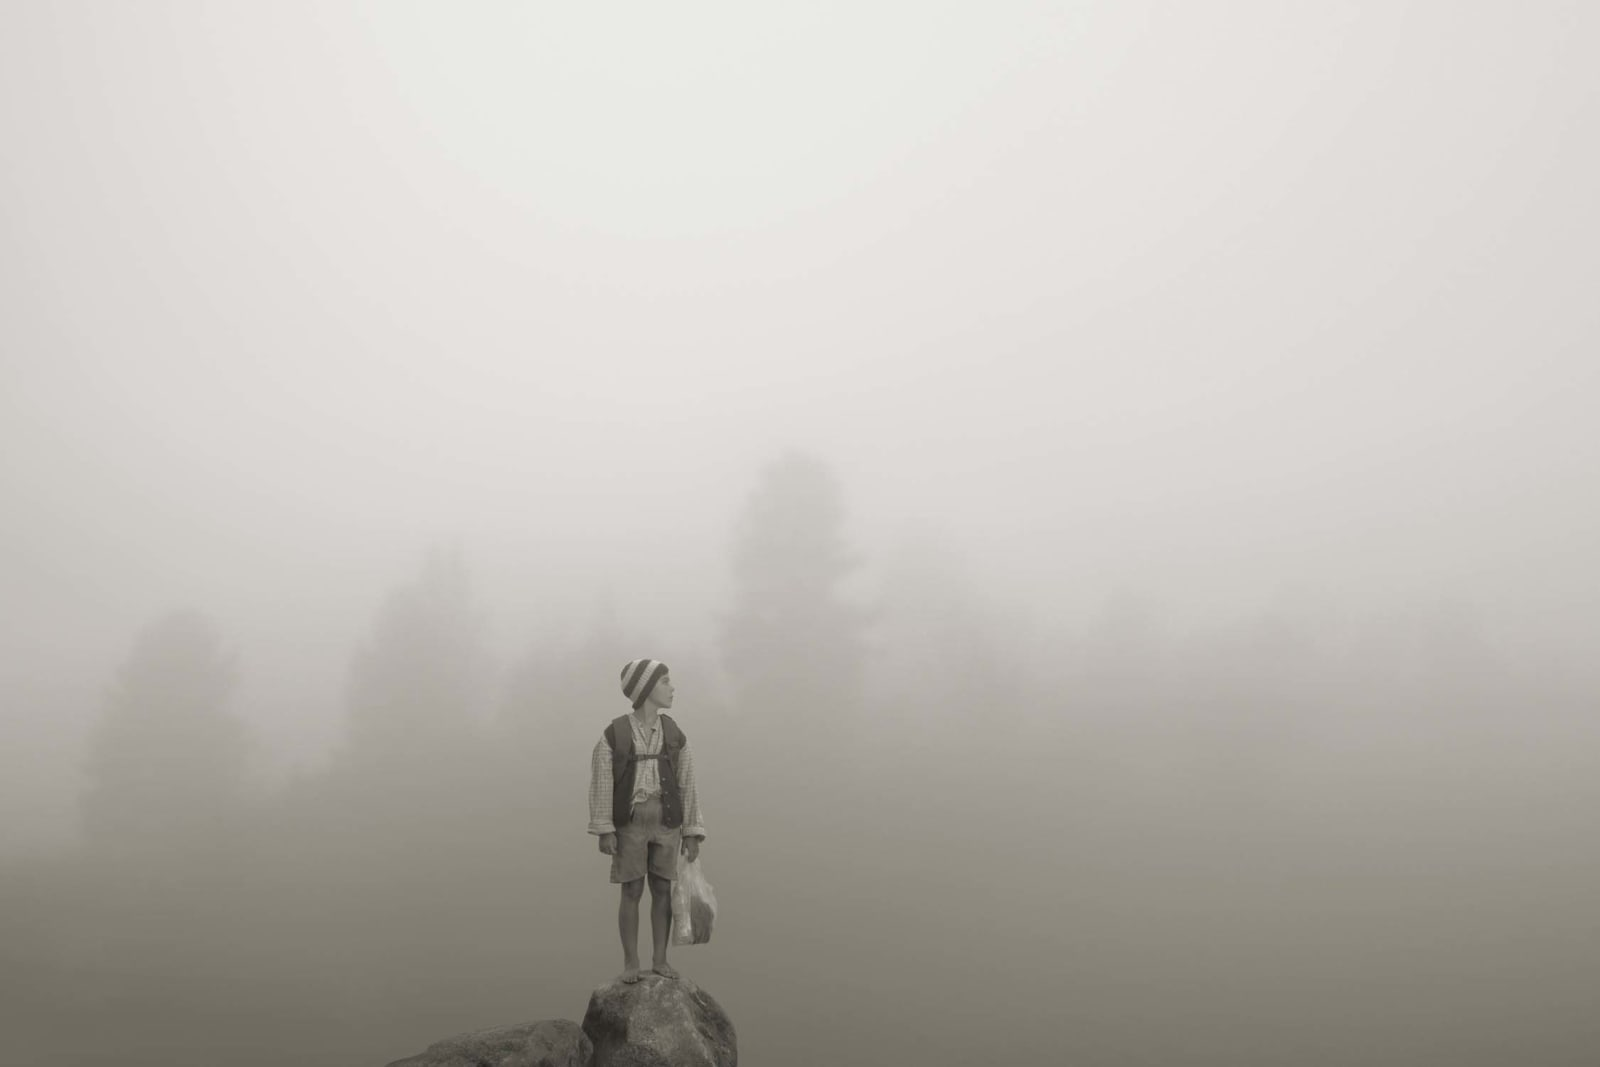 Young boy on mountain top in front of misty landscape, by Erwin Olaf